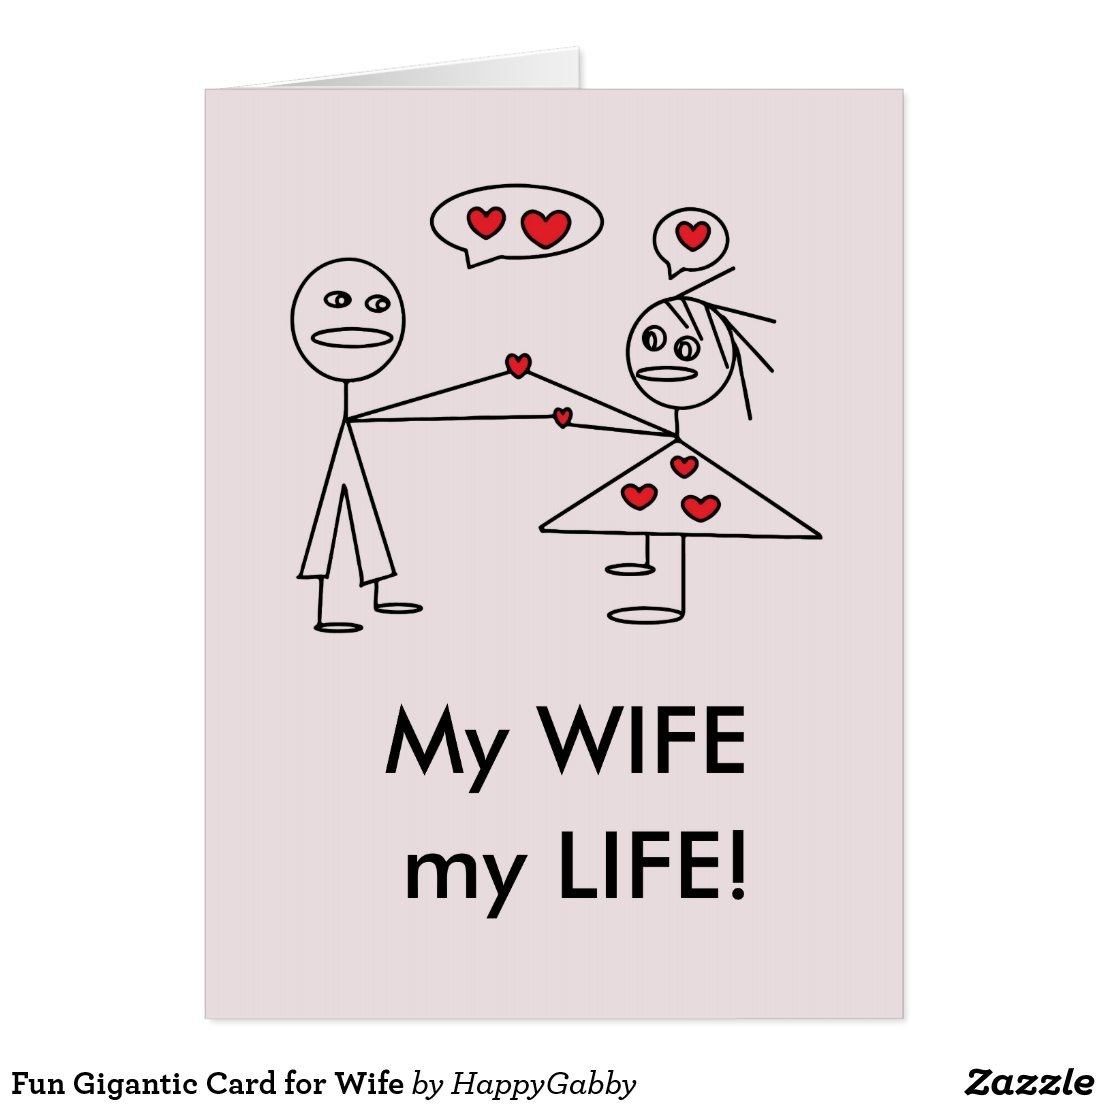 Gigantic Card for Wife